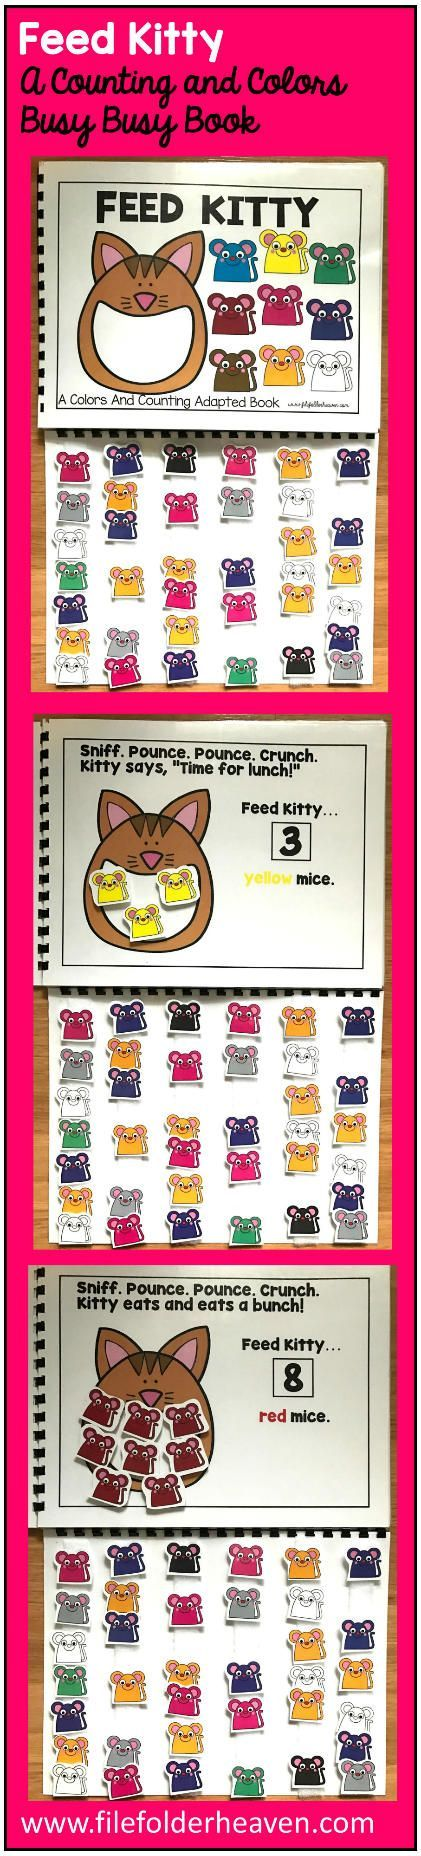 This Feed Kitty Colors and Counting Adapted Book is an adapted book that focuses on colors and counting in a fun and interactive way. In a small group, independent center or independent work station. A teacher or student reads through the book and feeds the animal or critter, the correct number and color the food on each page. Sample text: